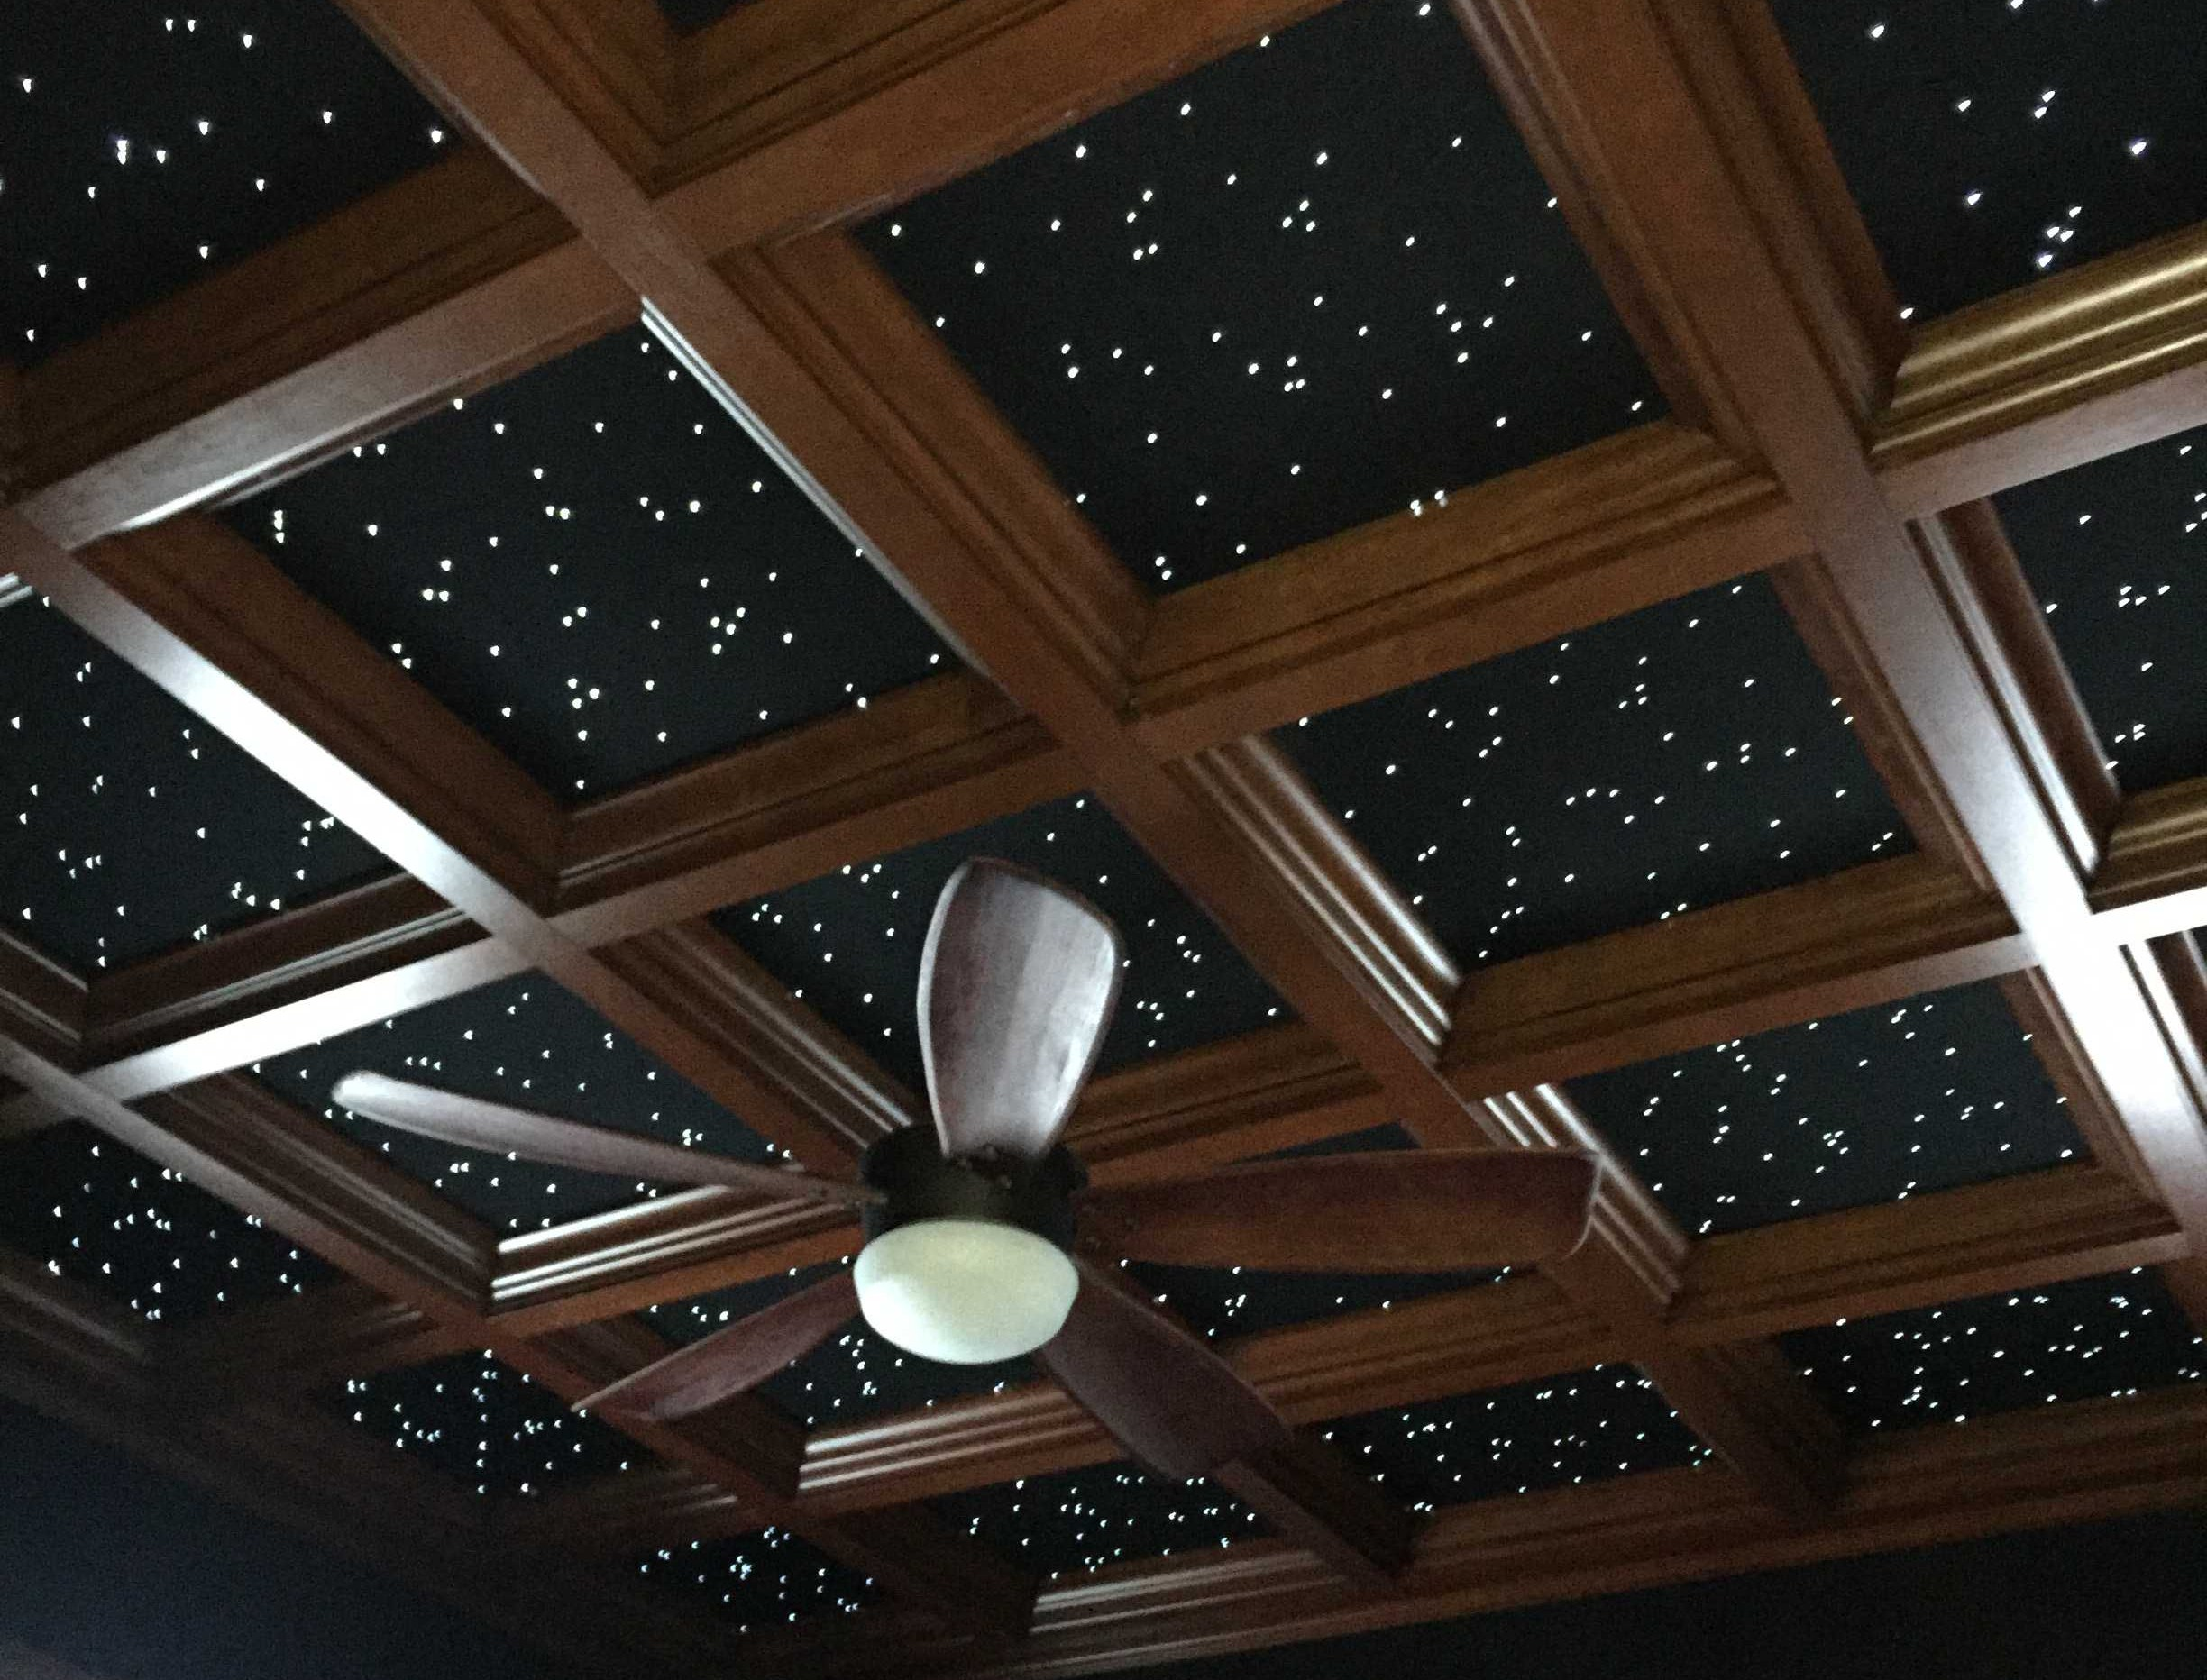 Woodgrid Coffered Ceilings By Midwestern Wood Products Co Wood Woodgrid® Coffered Ceilings By Midwestern Wood Products Co